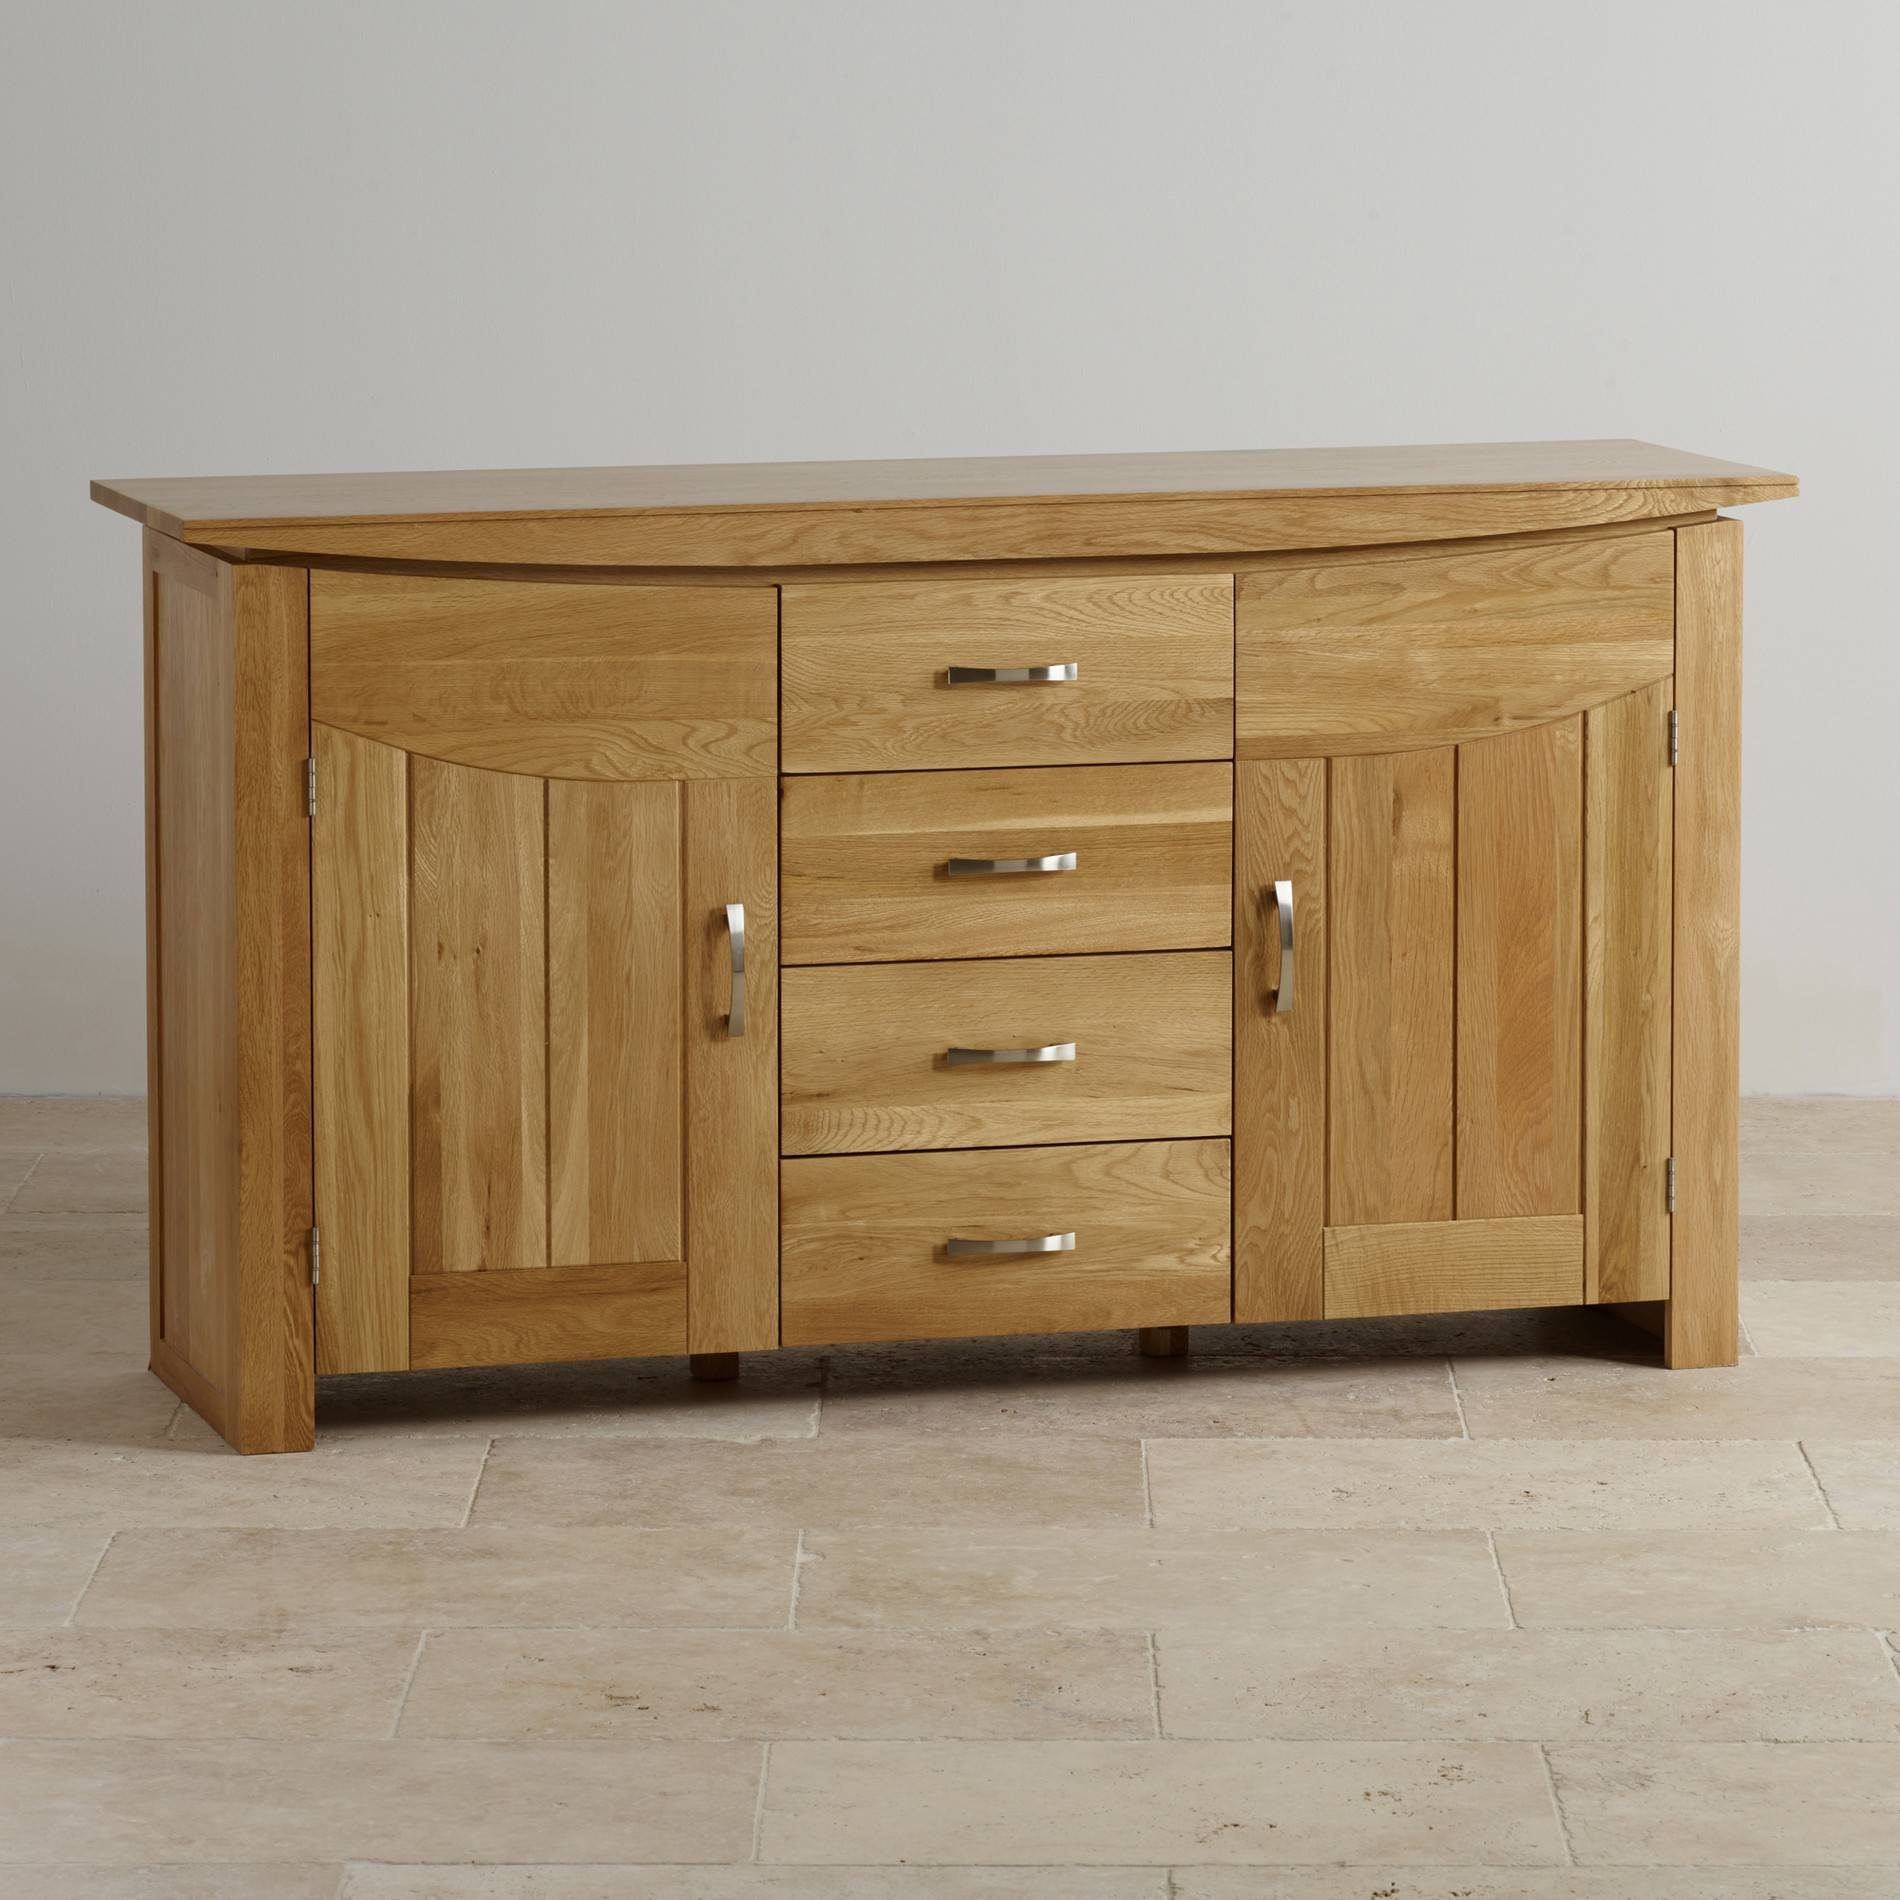 Sideboards | 100% Solid Hardwood | Oak Furniture Land inside Real Wood Sideboards (Image 10 of 30)